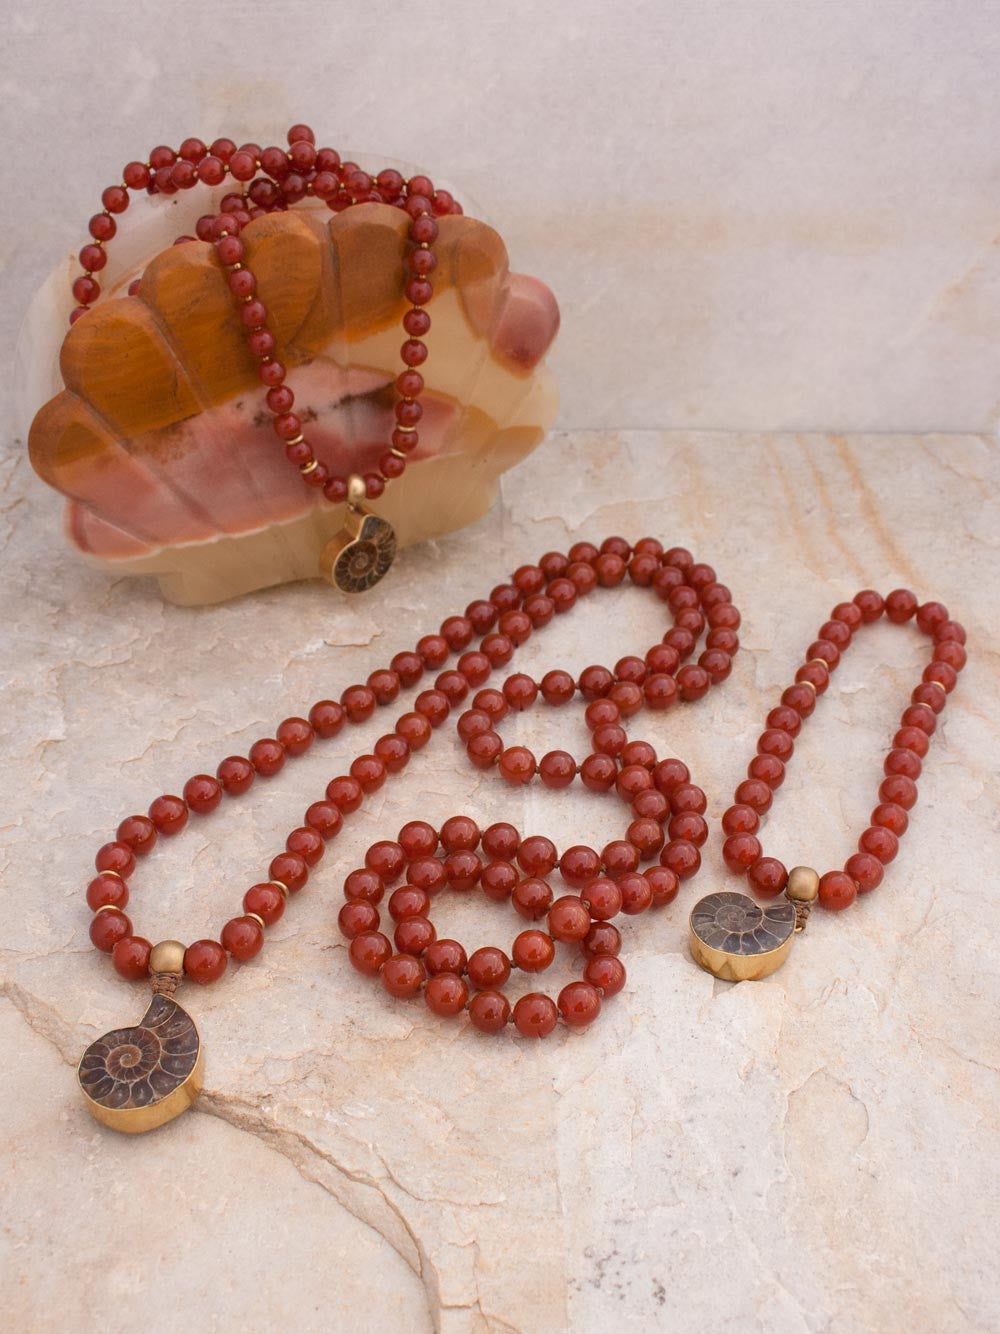 To Infinity... a 27 bead hand-held Mala in spectacular sienna 10mm onyx,  with brass Guru bead and ammonite nautilus: view of 27 bead, 81 bead, and 108 bead Malas.